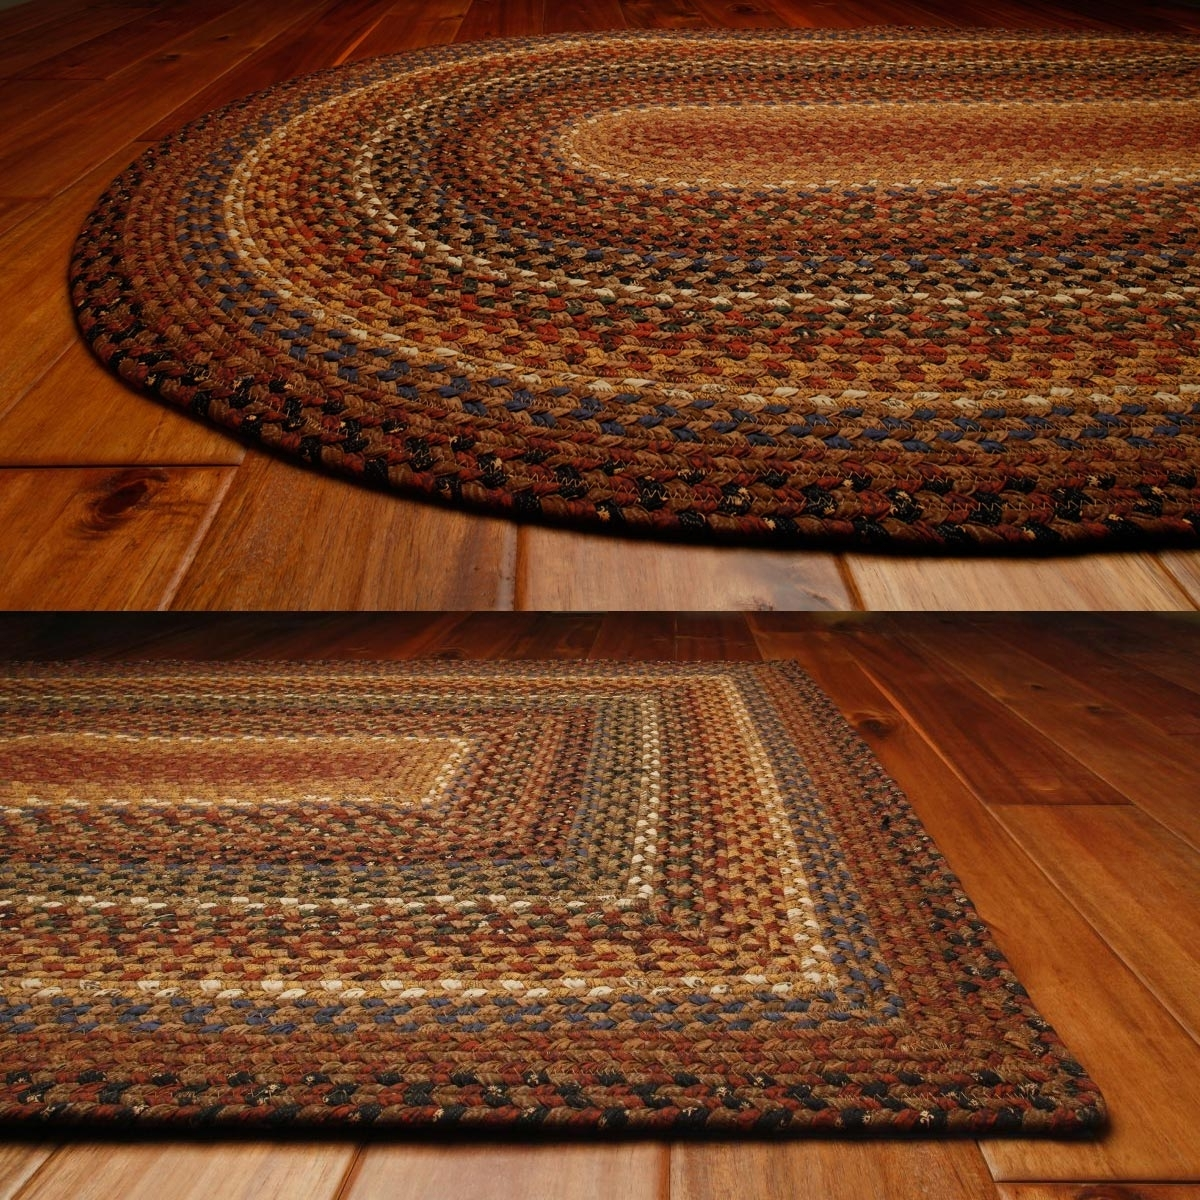 Cotton Braided Rugs: Primitive Home Decors Intended For Buy Braided Rugs For Less (Image 3 of 10)